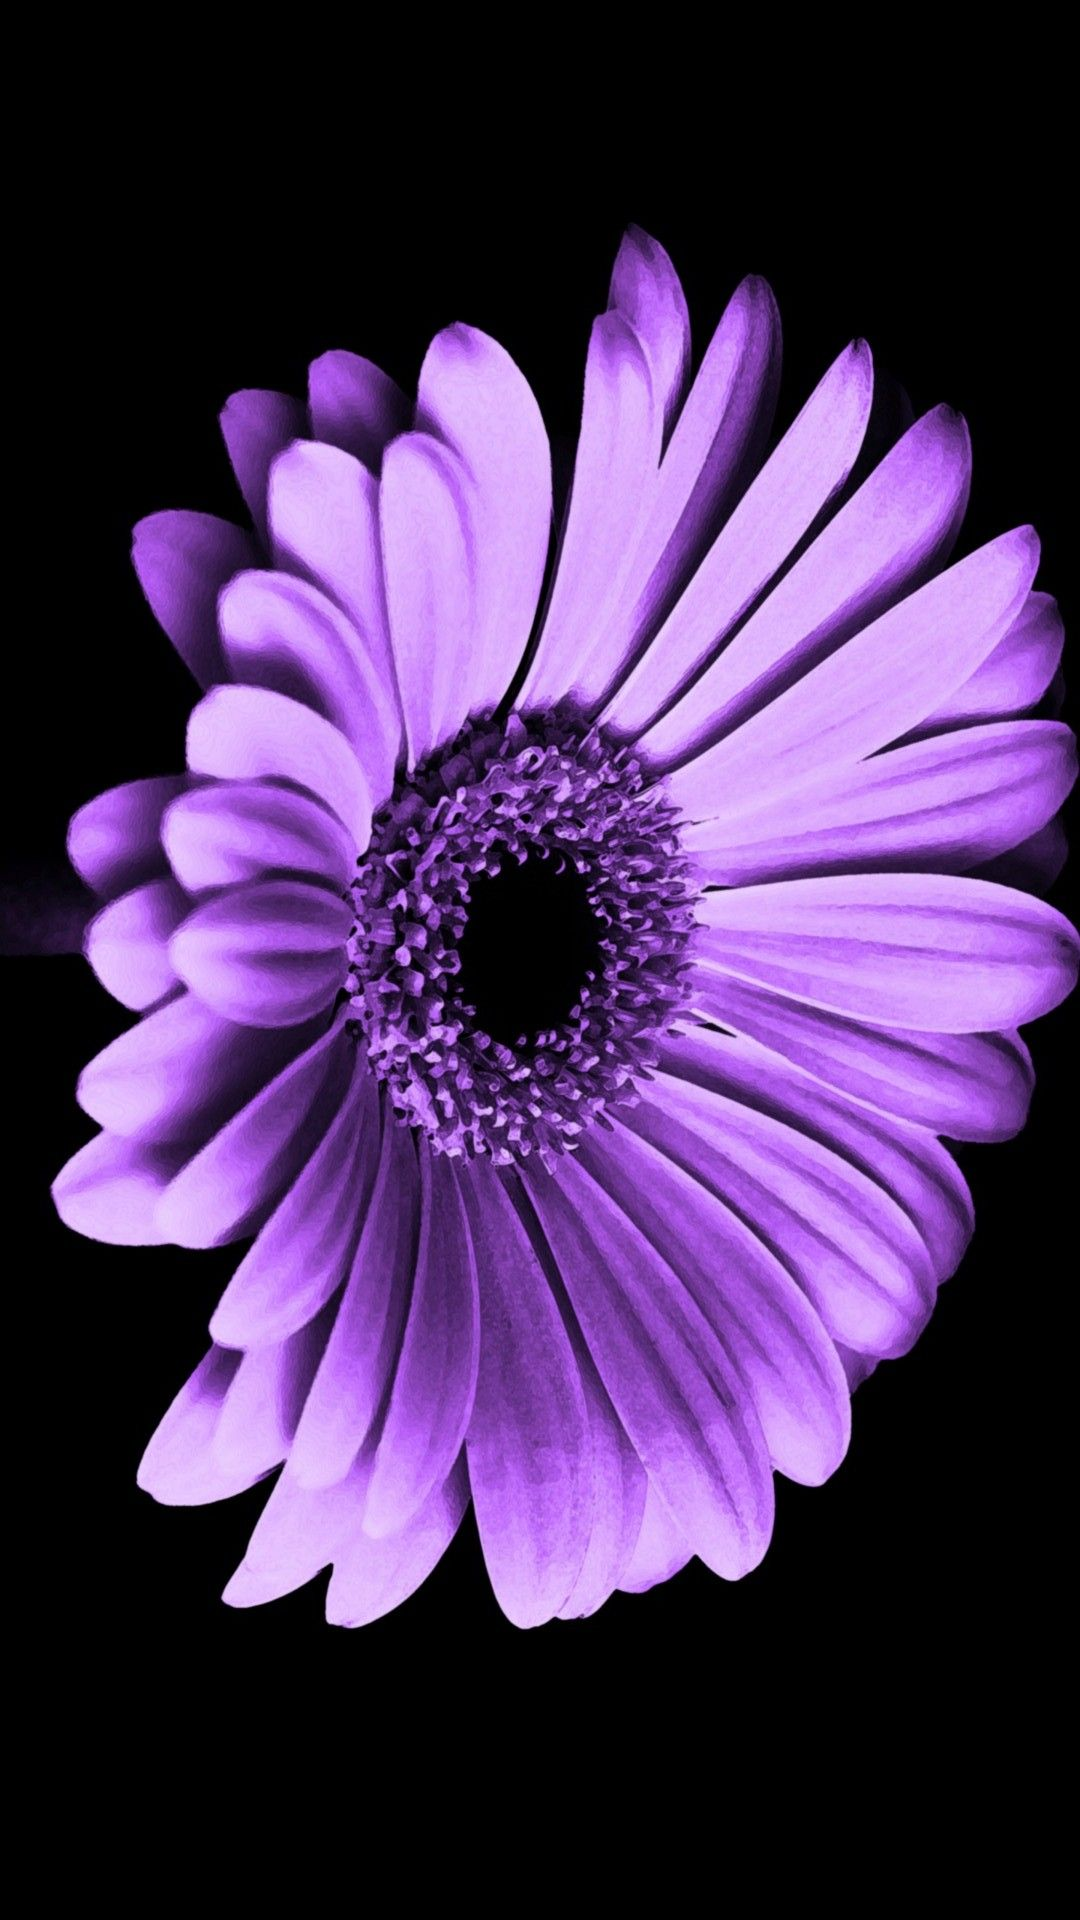 Violet Daisy Flower iPhone Wallpaper Best iPhone